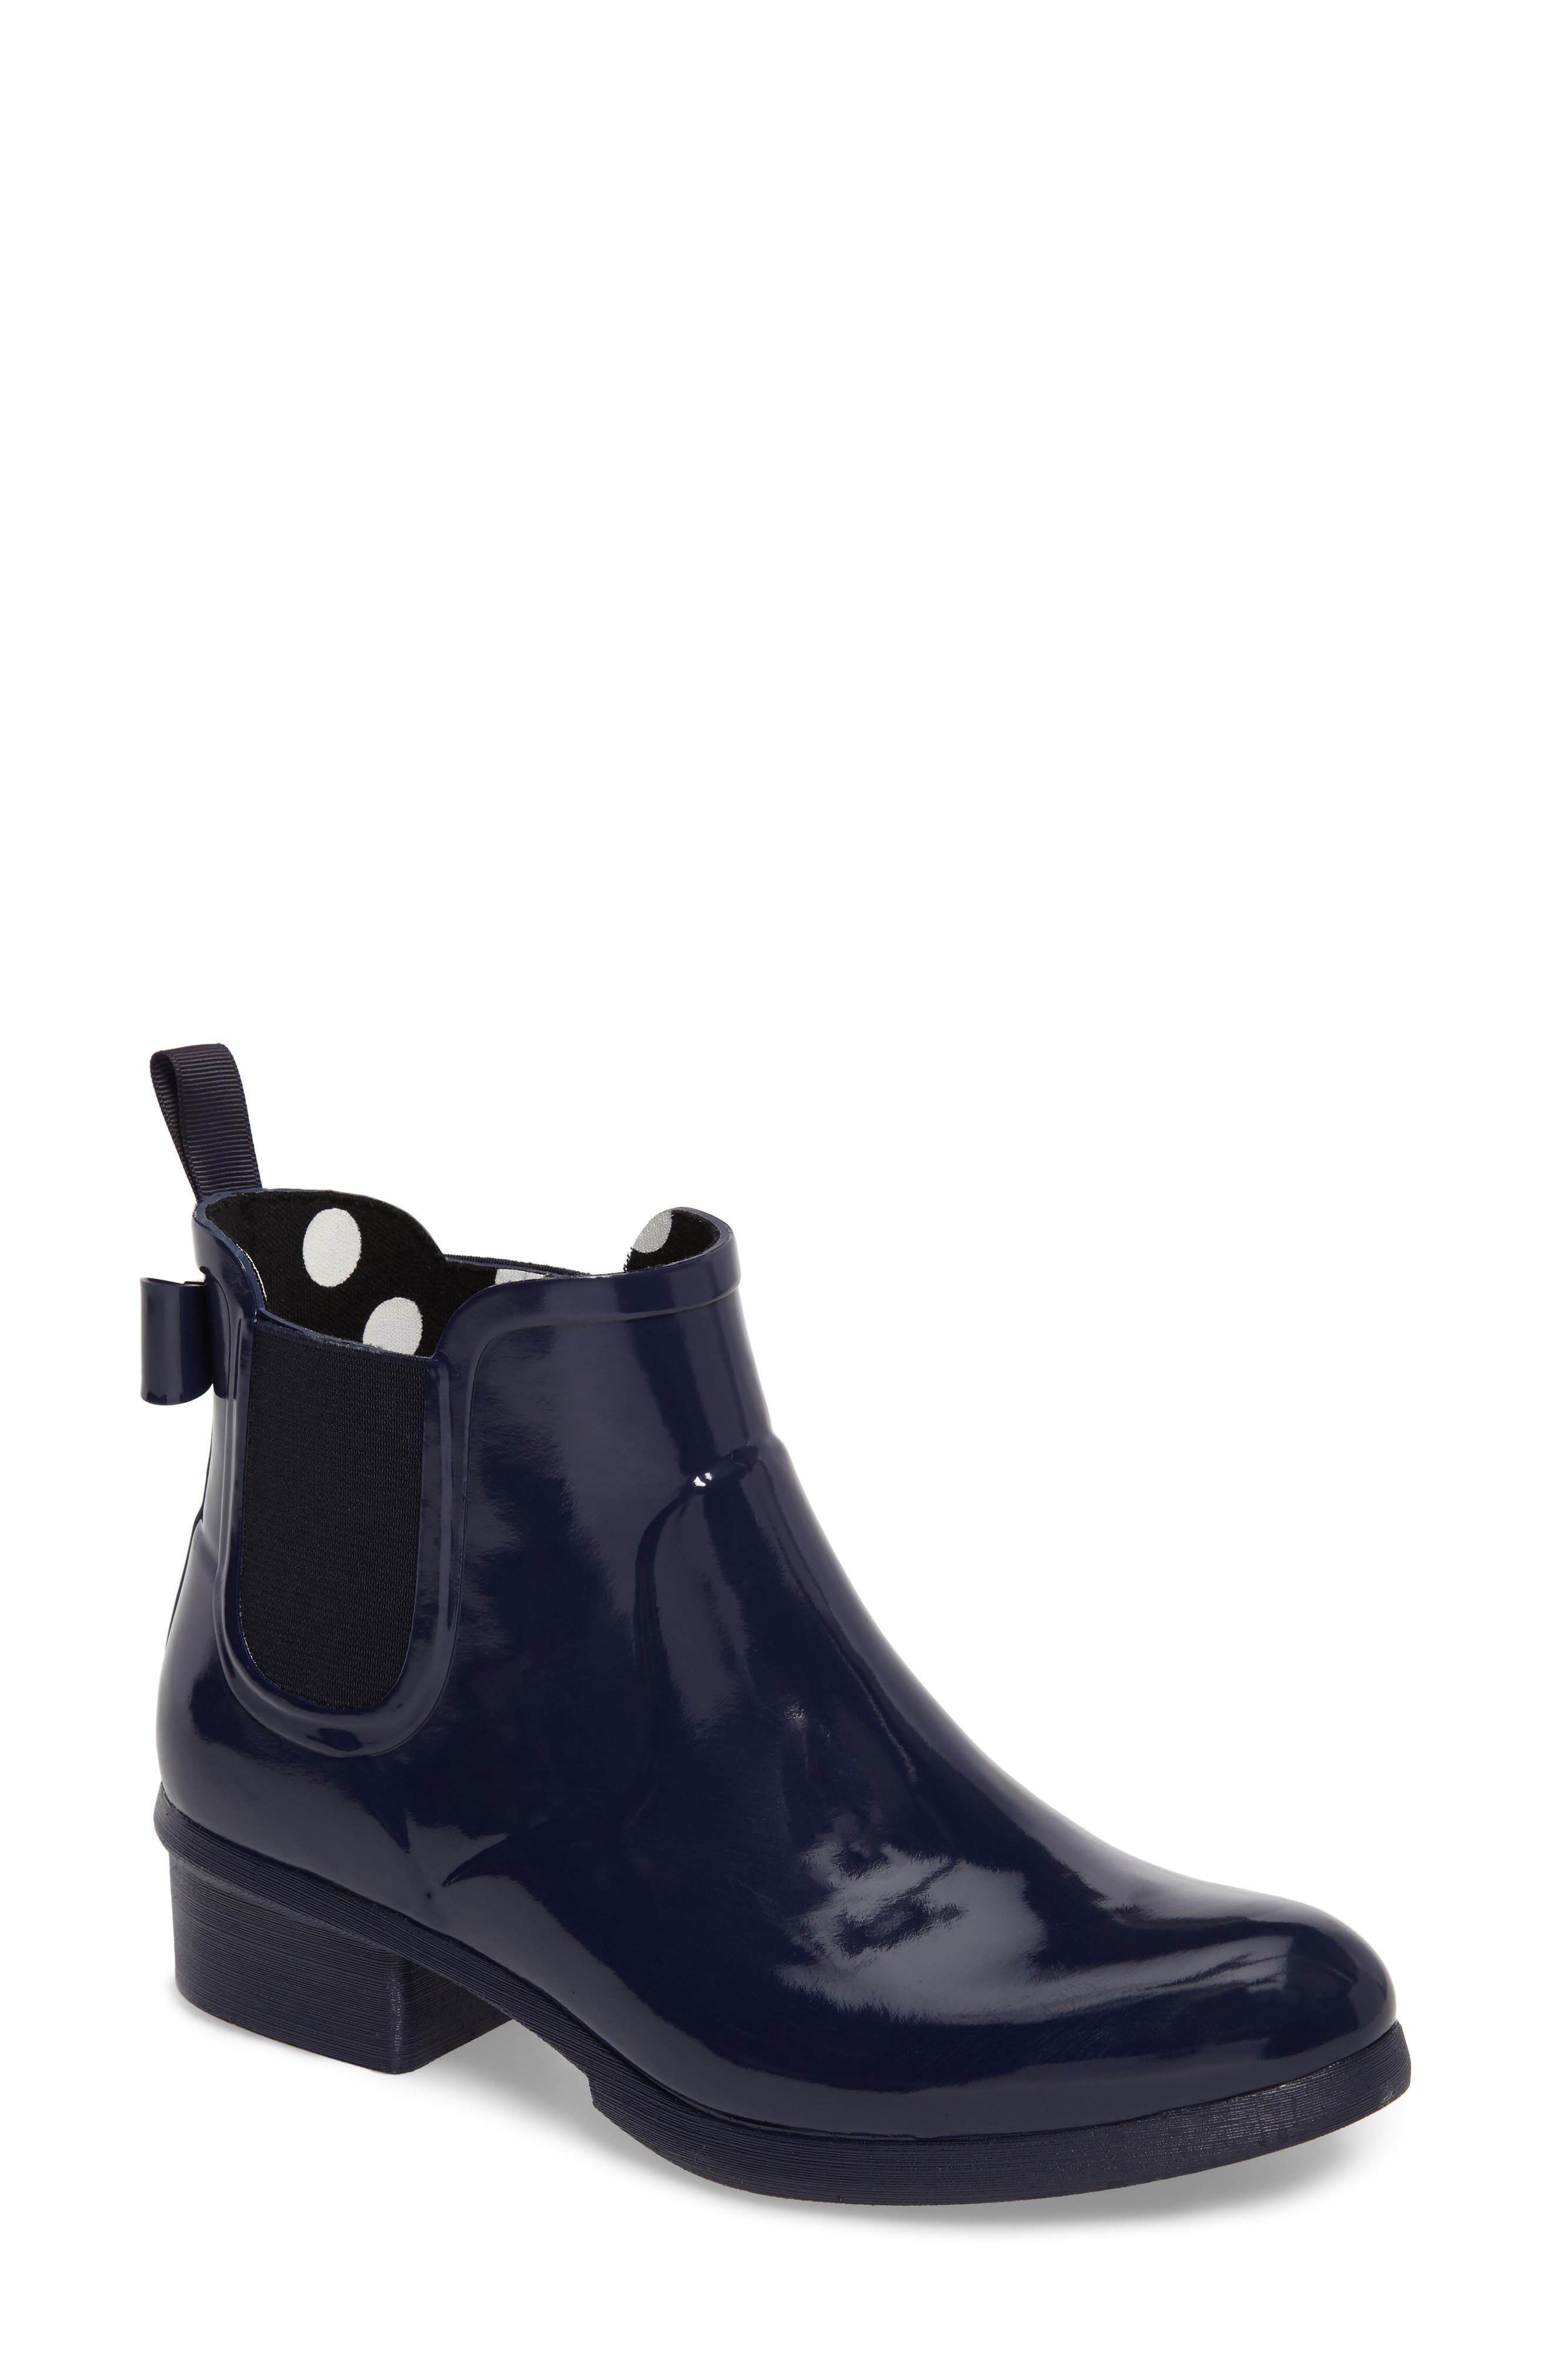 Alternate Image 1 Selected - kate spade new york telly chelsea rain bootie (Women)